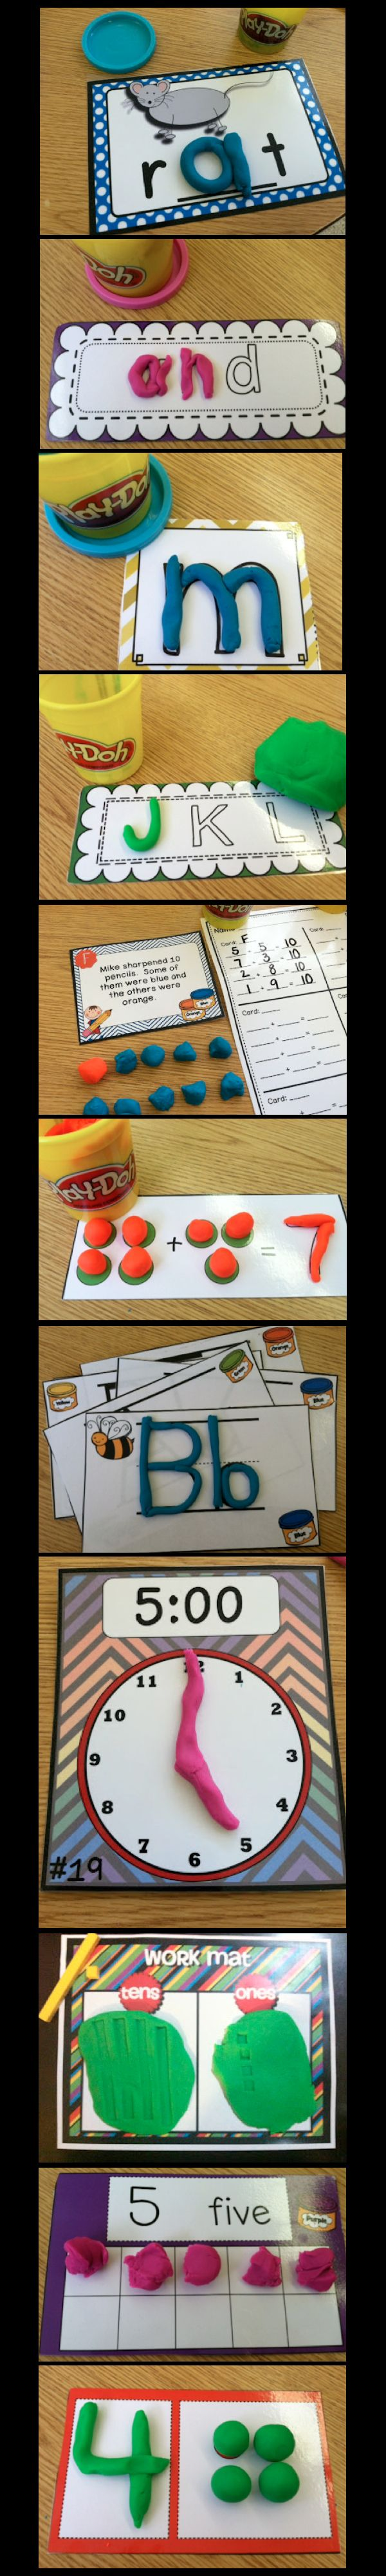 Great Ideas on Using Play-doh in the classroom.... keep learning fun! Primary Possibilities. This is a great way to teach number, time, and many other concepts. It helps the students be hand on with learning.